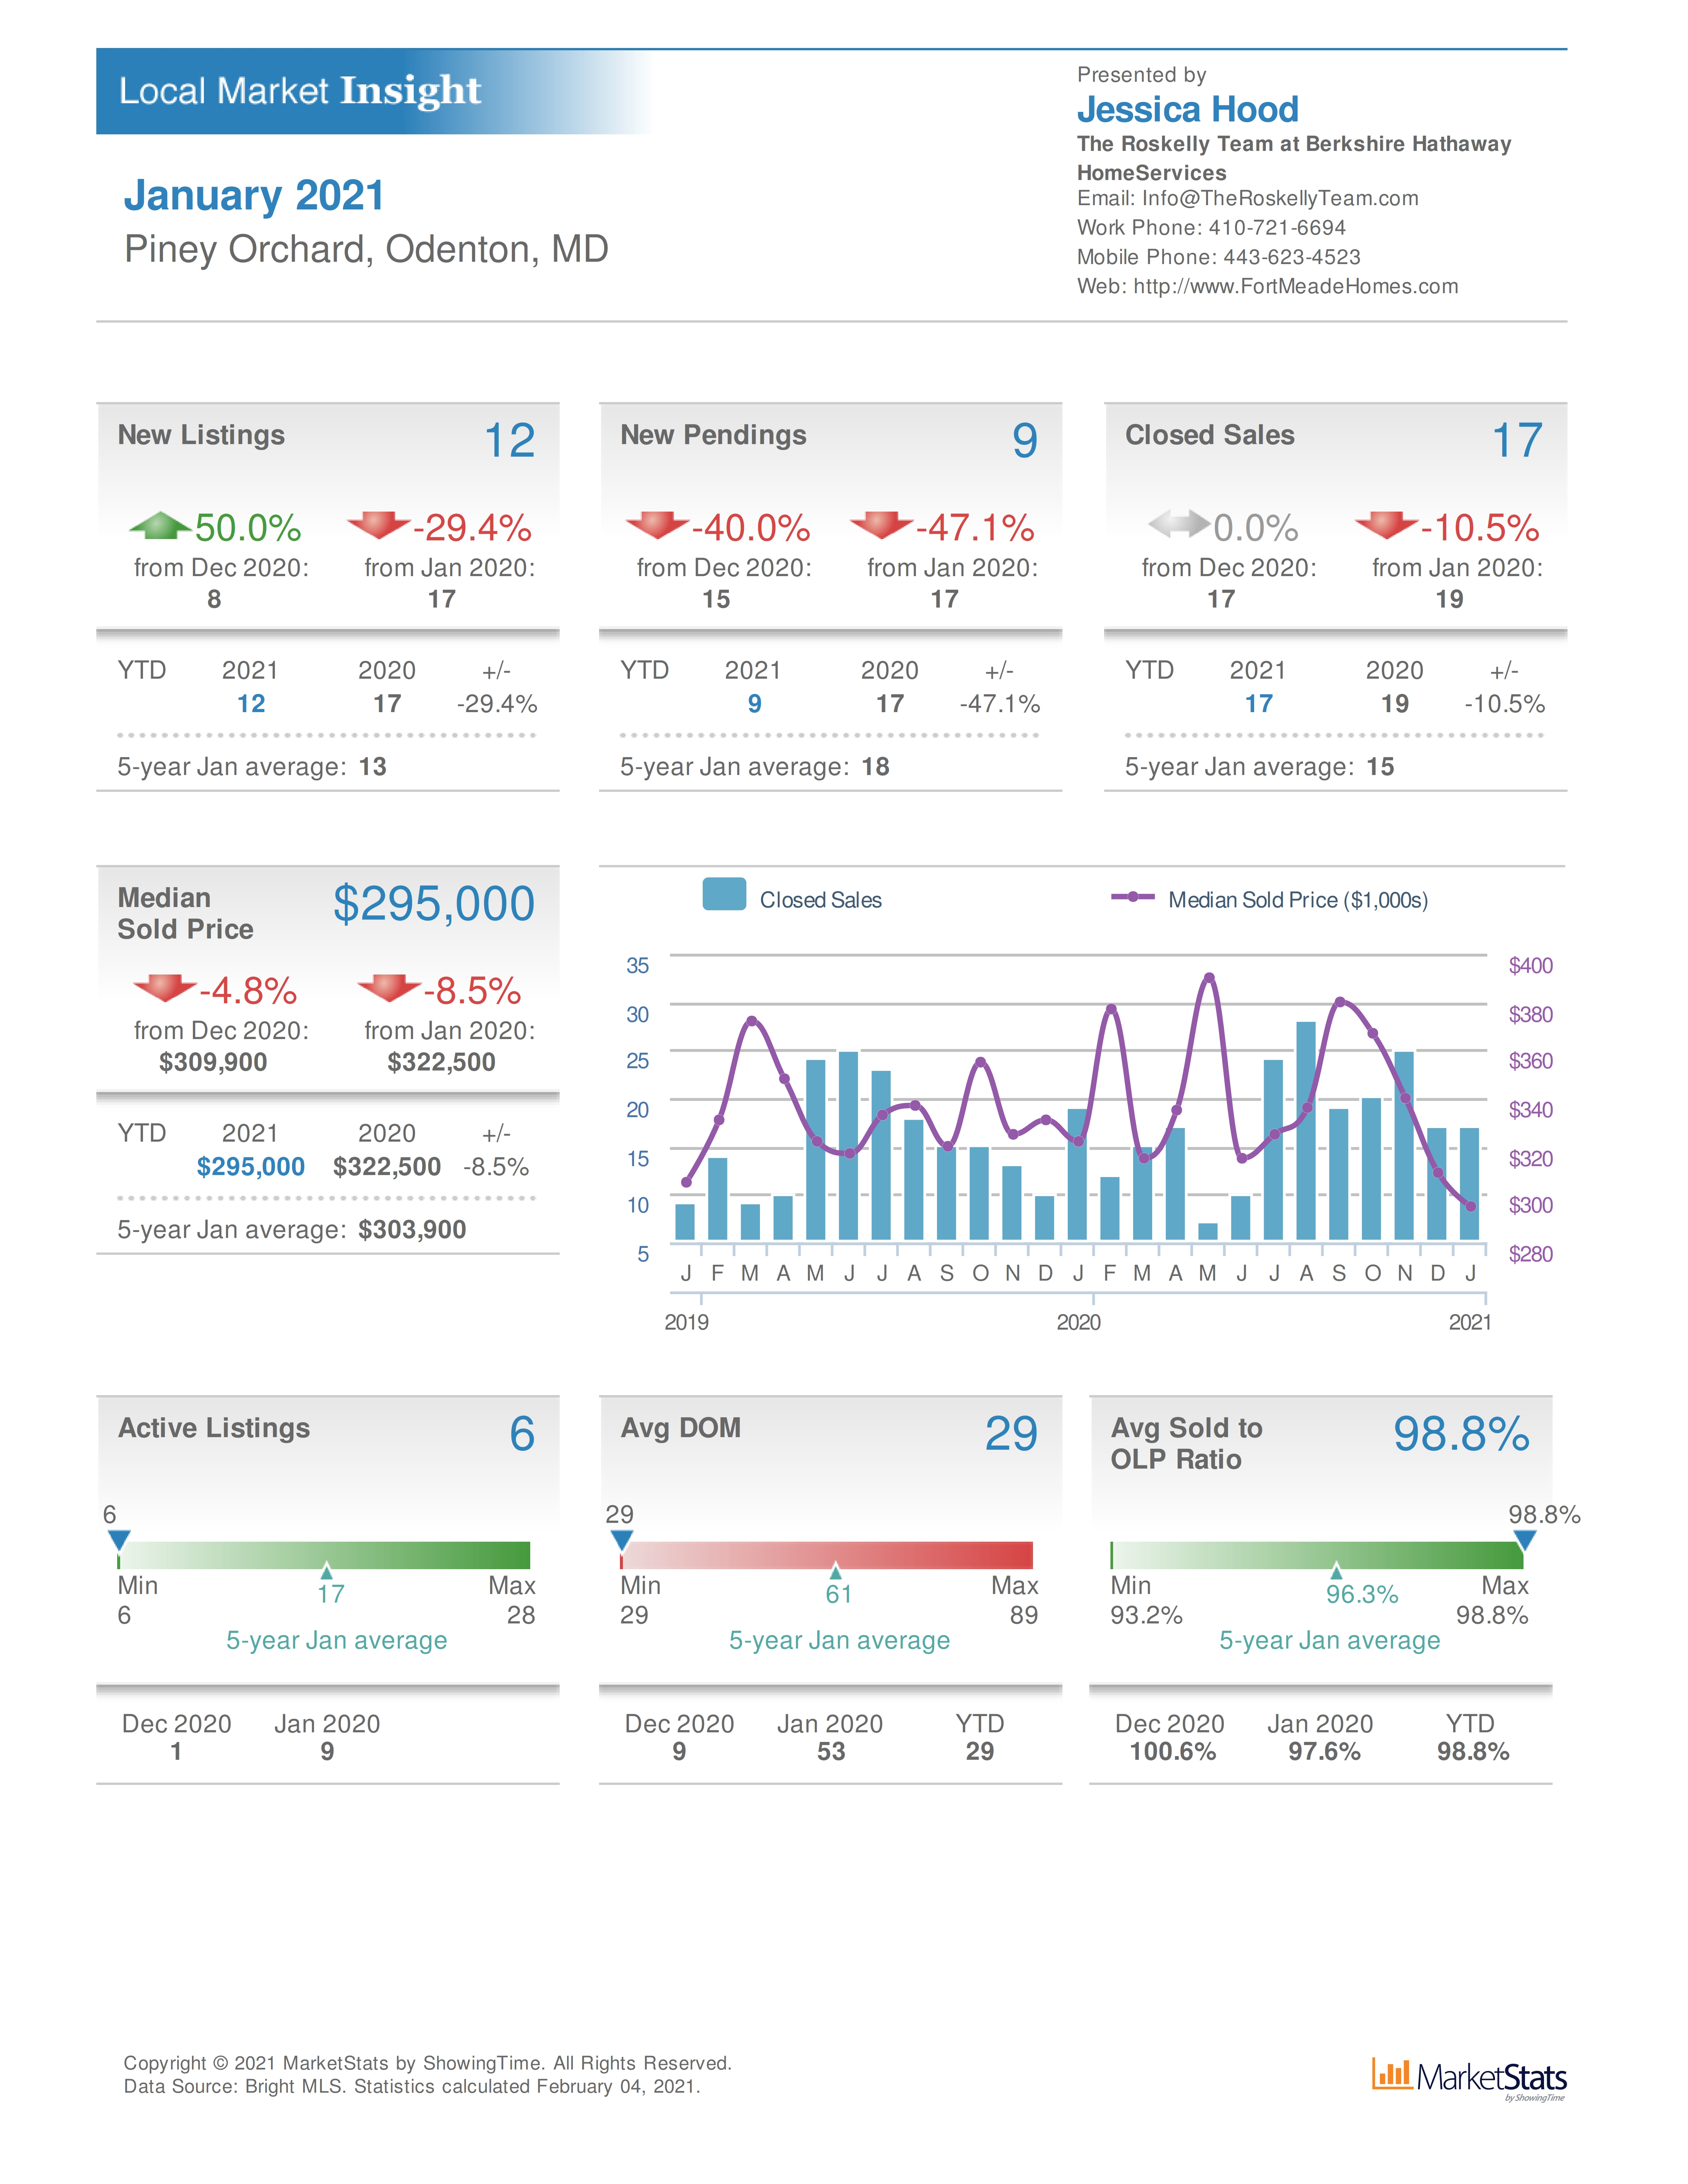 Fort Meade real estate stats for the Piney Orchard January 2021